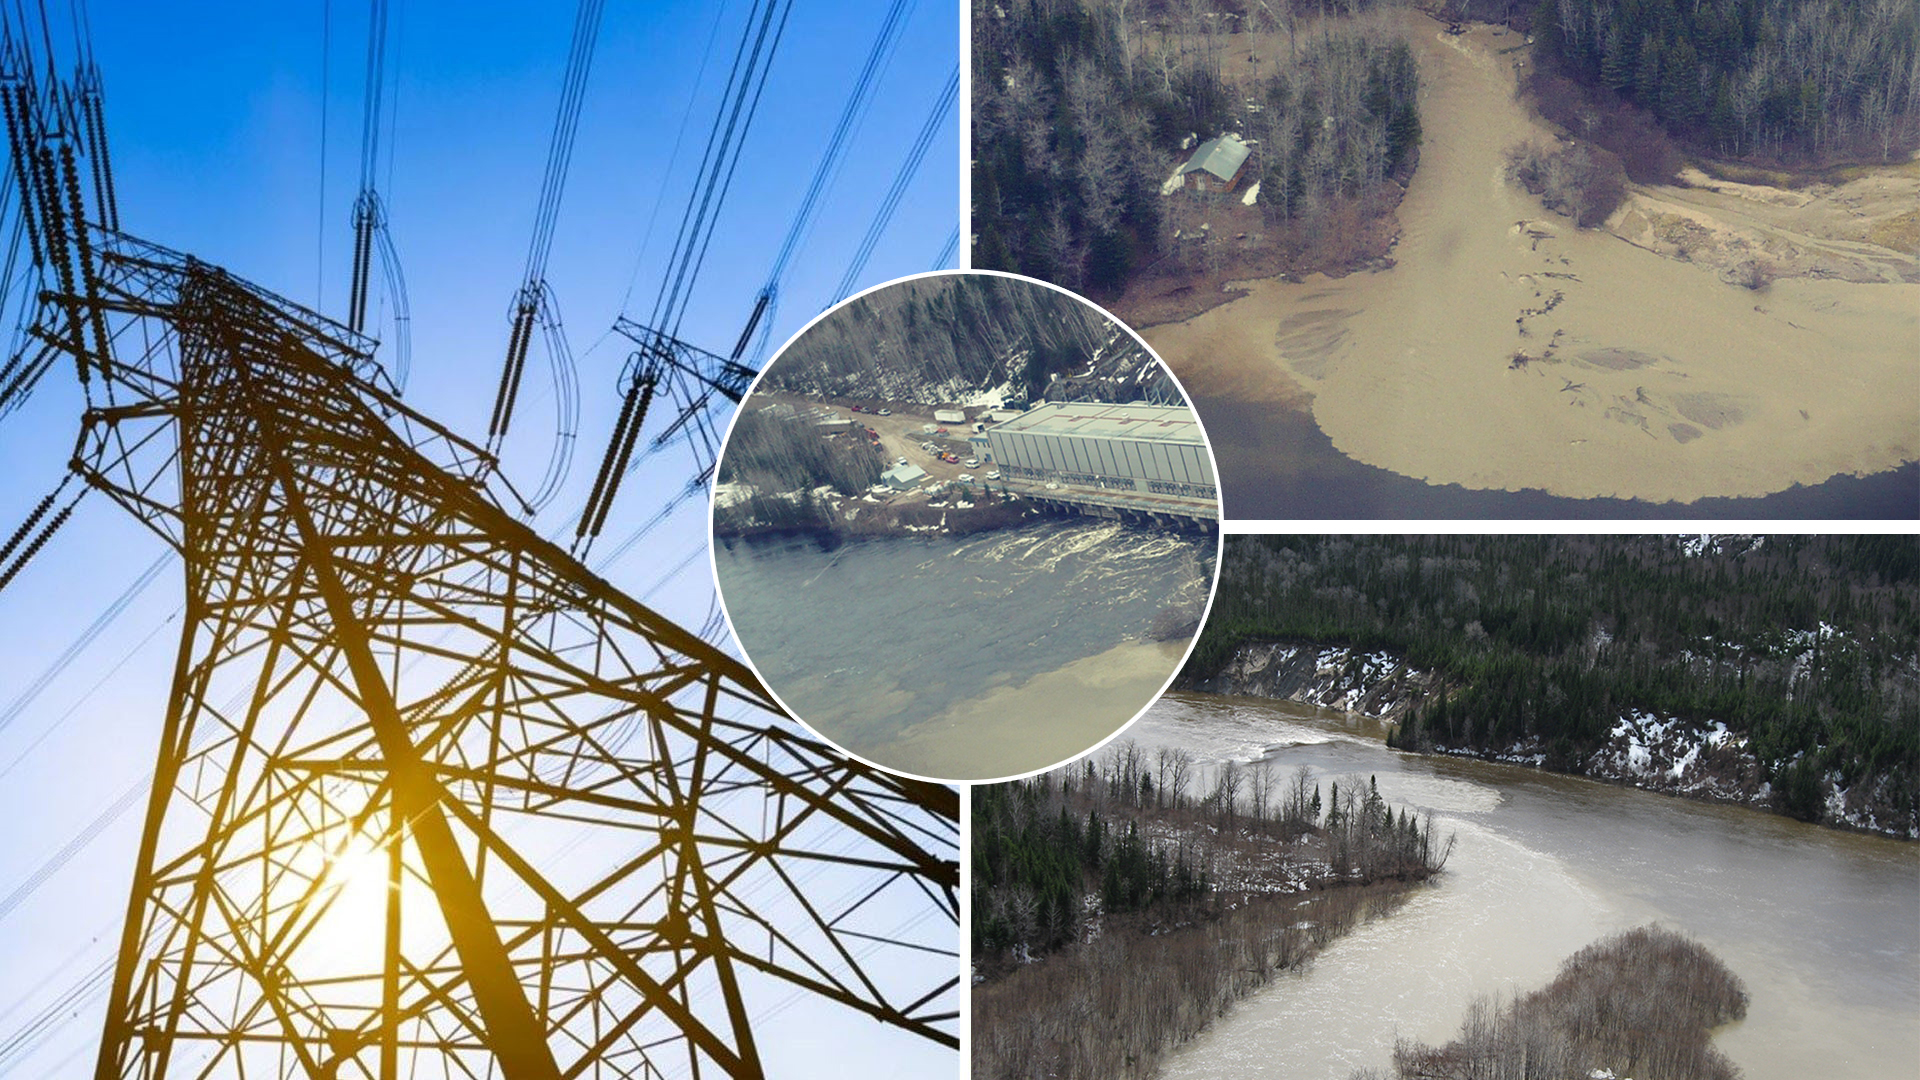 The hidden face of « clean energy » | Opposition to the NECEC | Quebec Hydro Clash